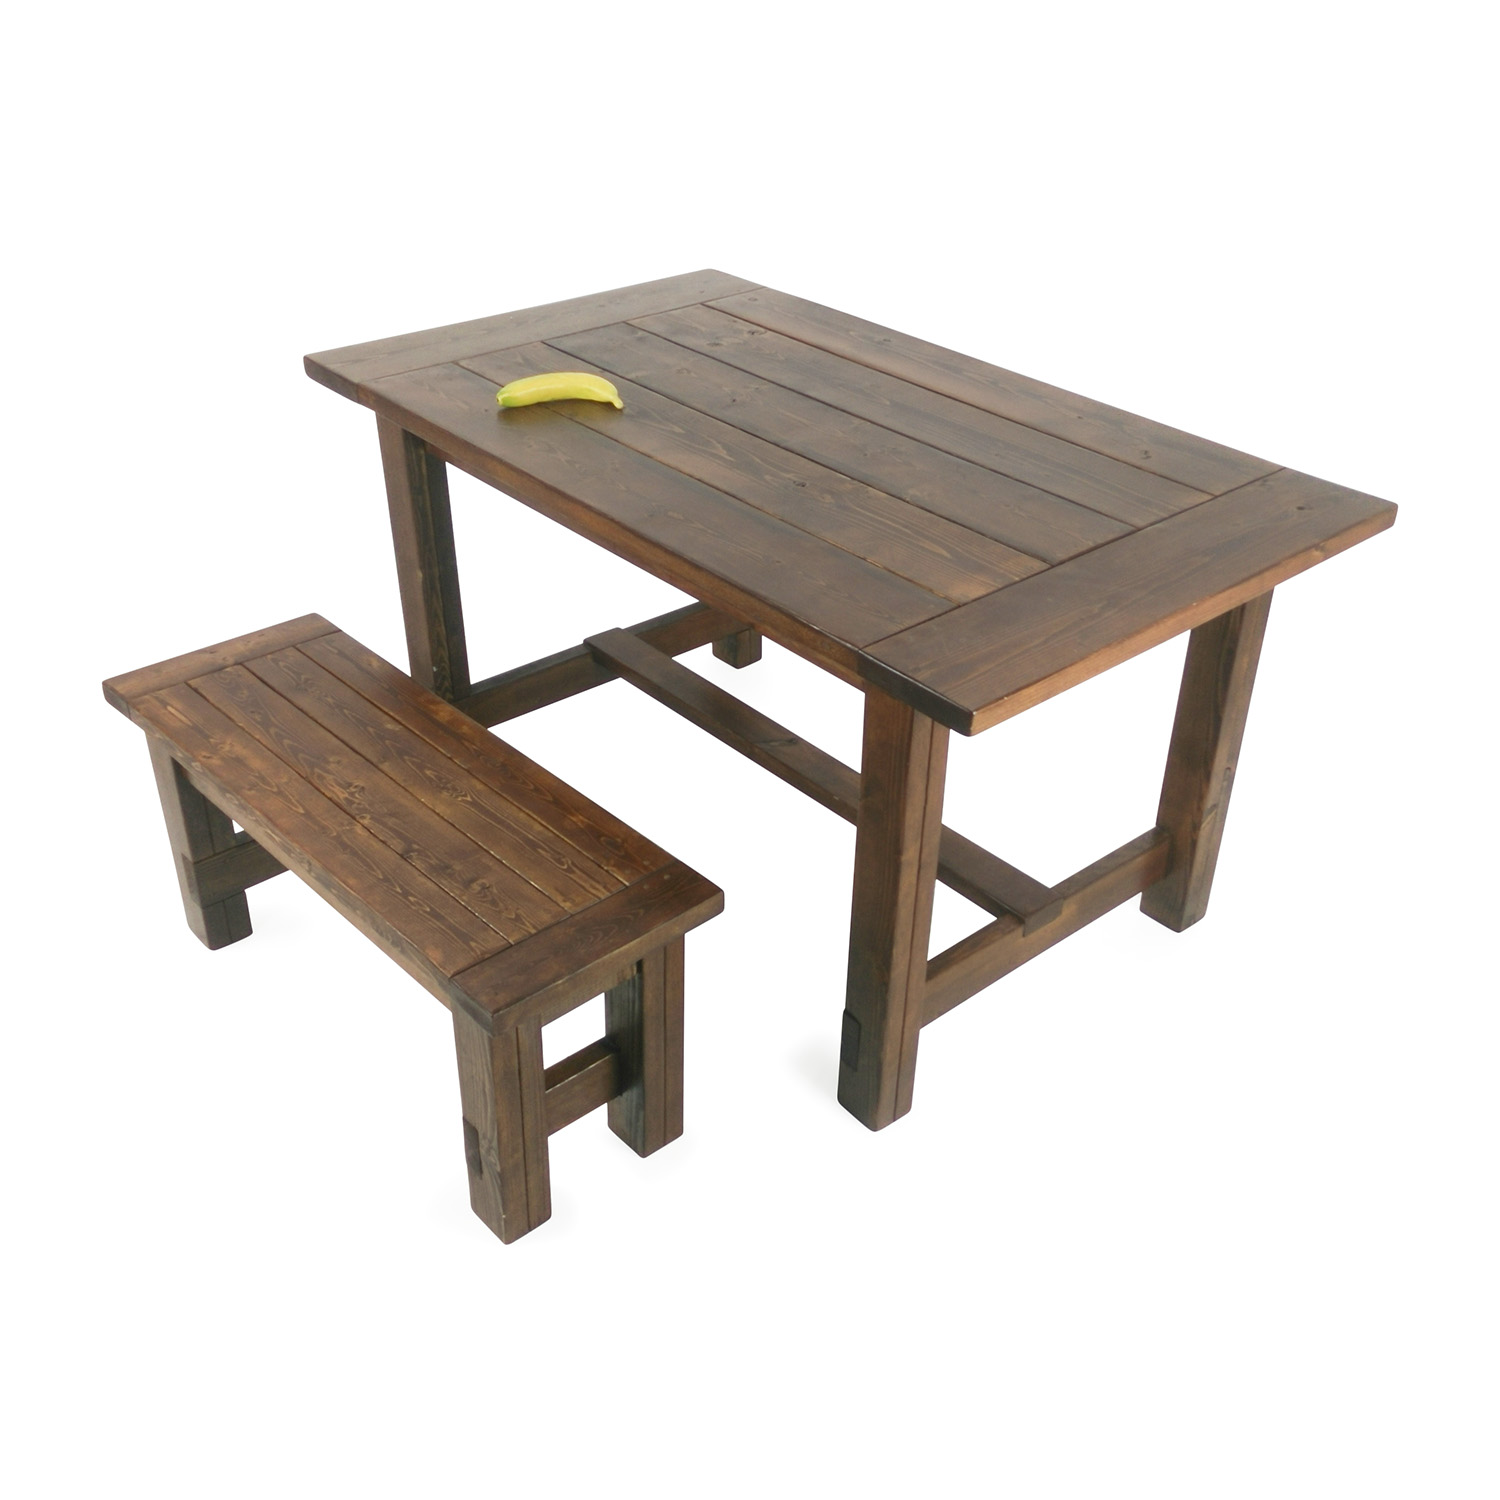 78 Off North Carolina Farmhouse Farmhouse Table And Bench Tables